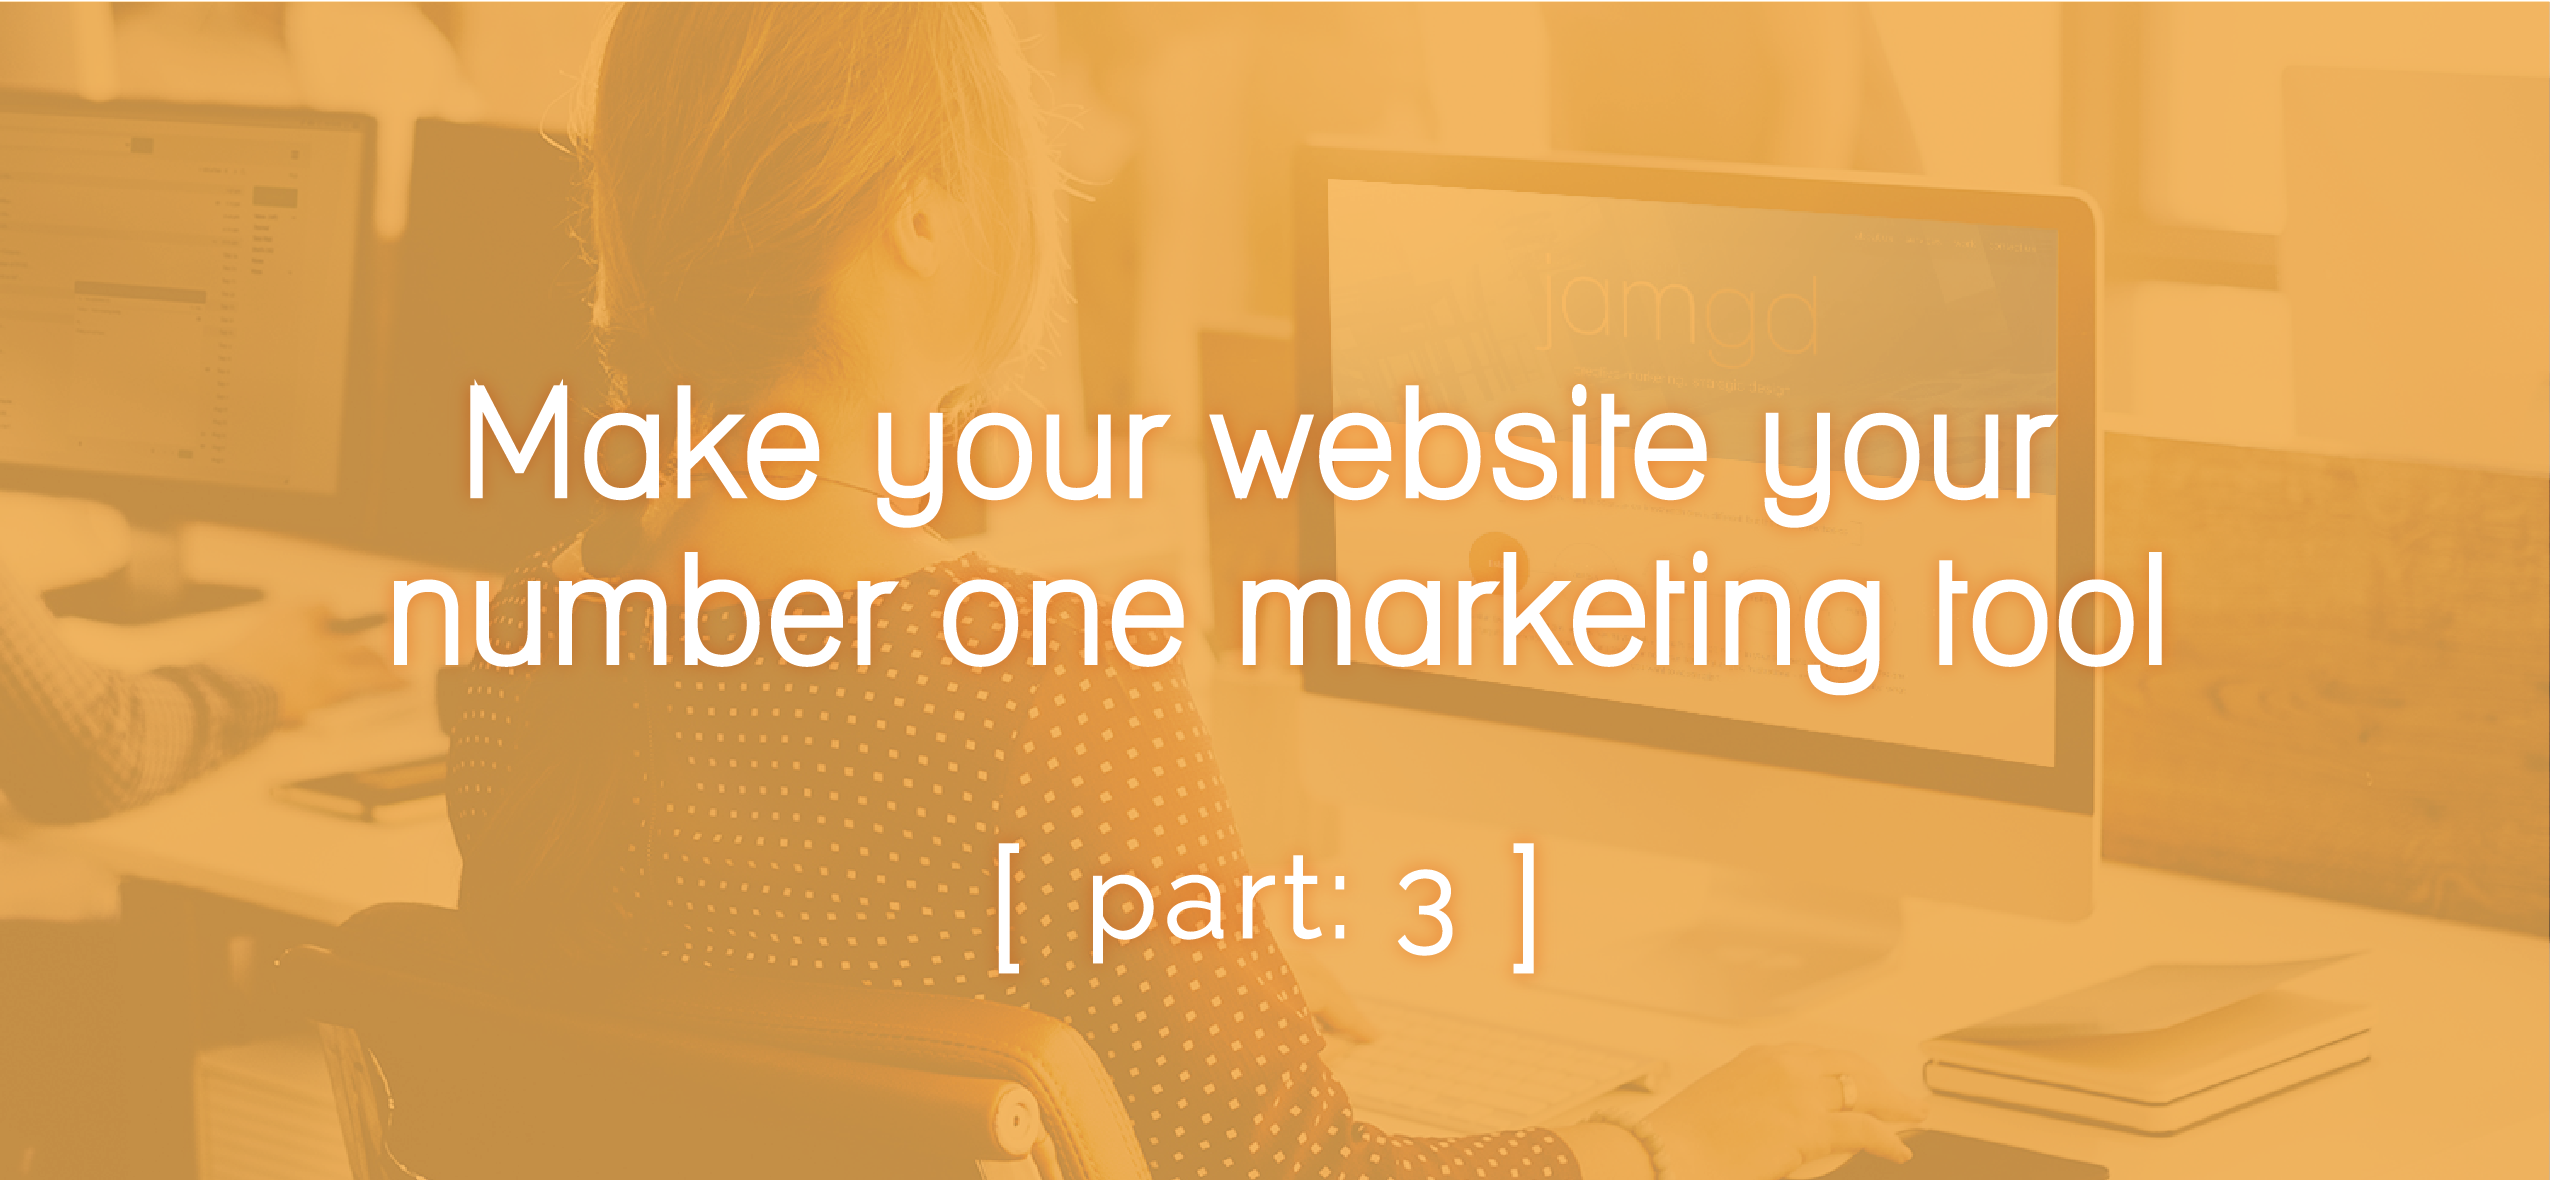 Make your website your number one marketing tool